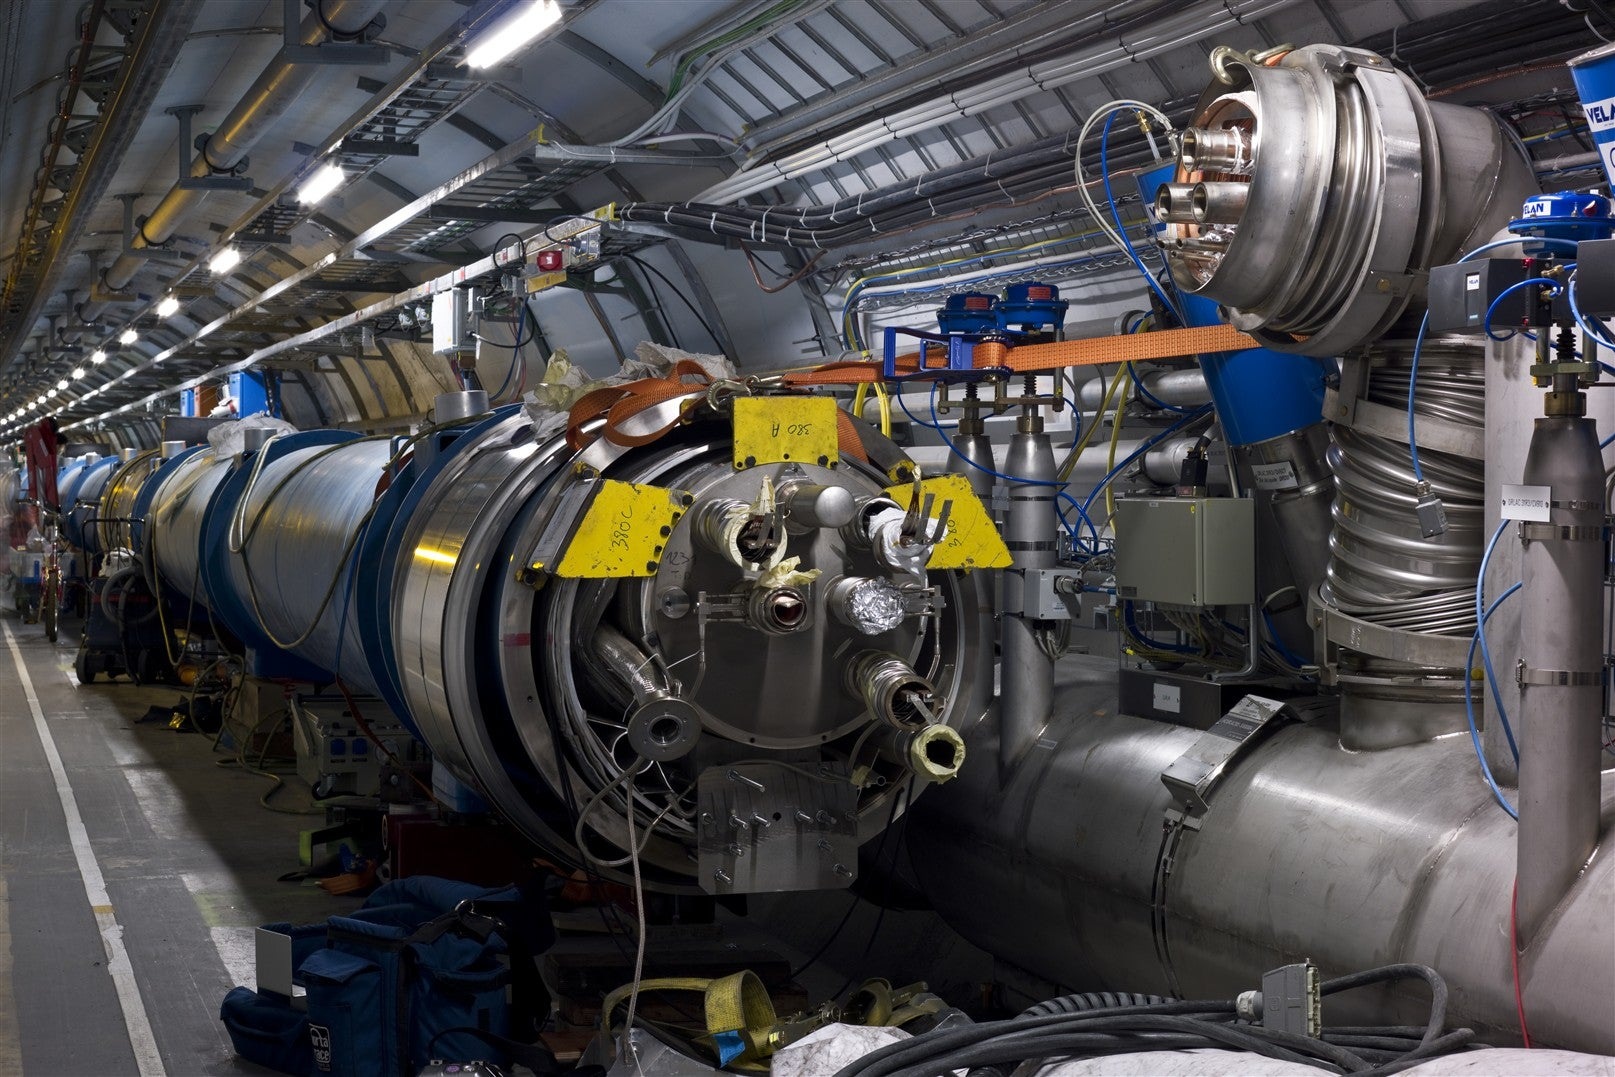 Following Baguette Incident, Large Hadron Collider Set for Restart This Week